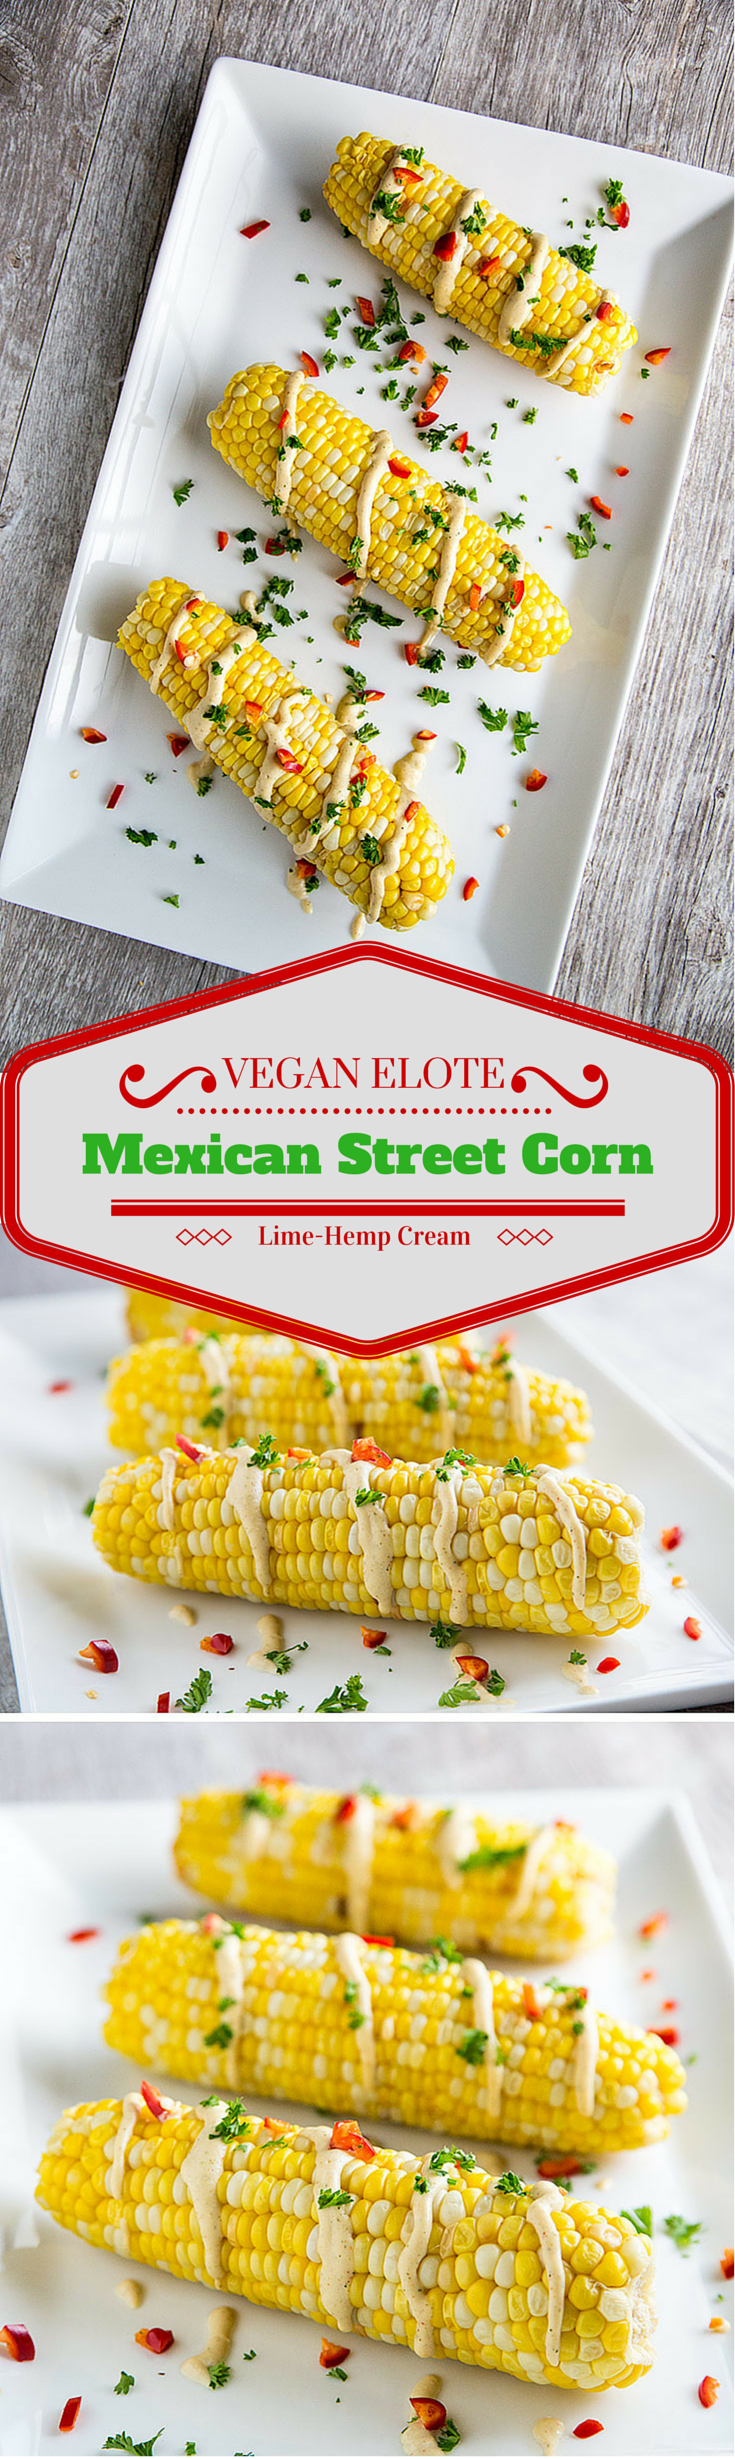 Fresh corn on the cob is slathered in a spicy, limey, cheesy, vegan sauce and sprinkled with chopped jalapeño peppers and cilantro.